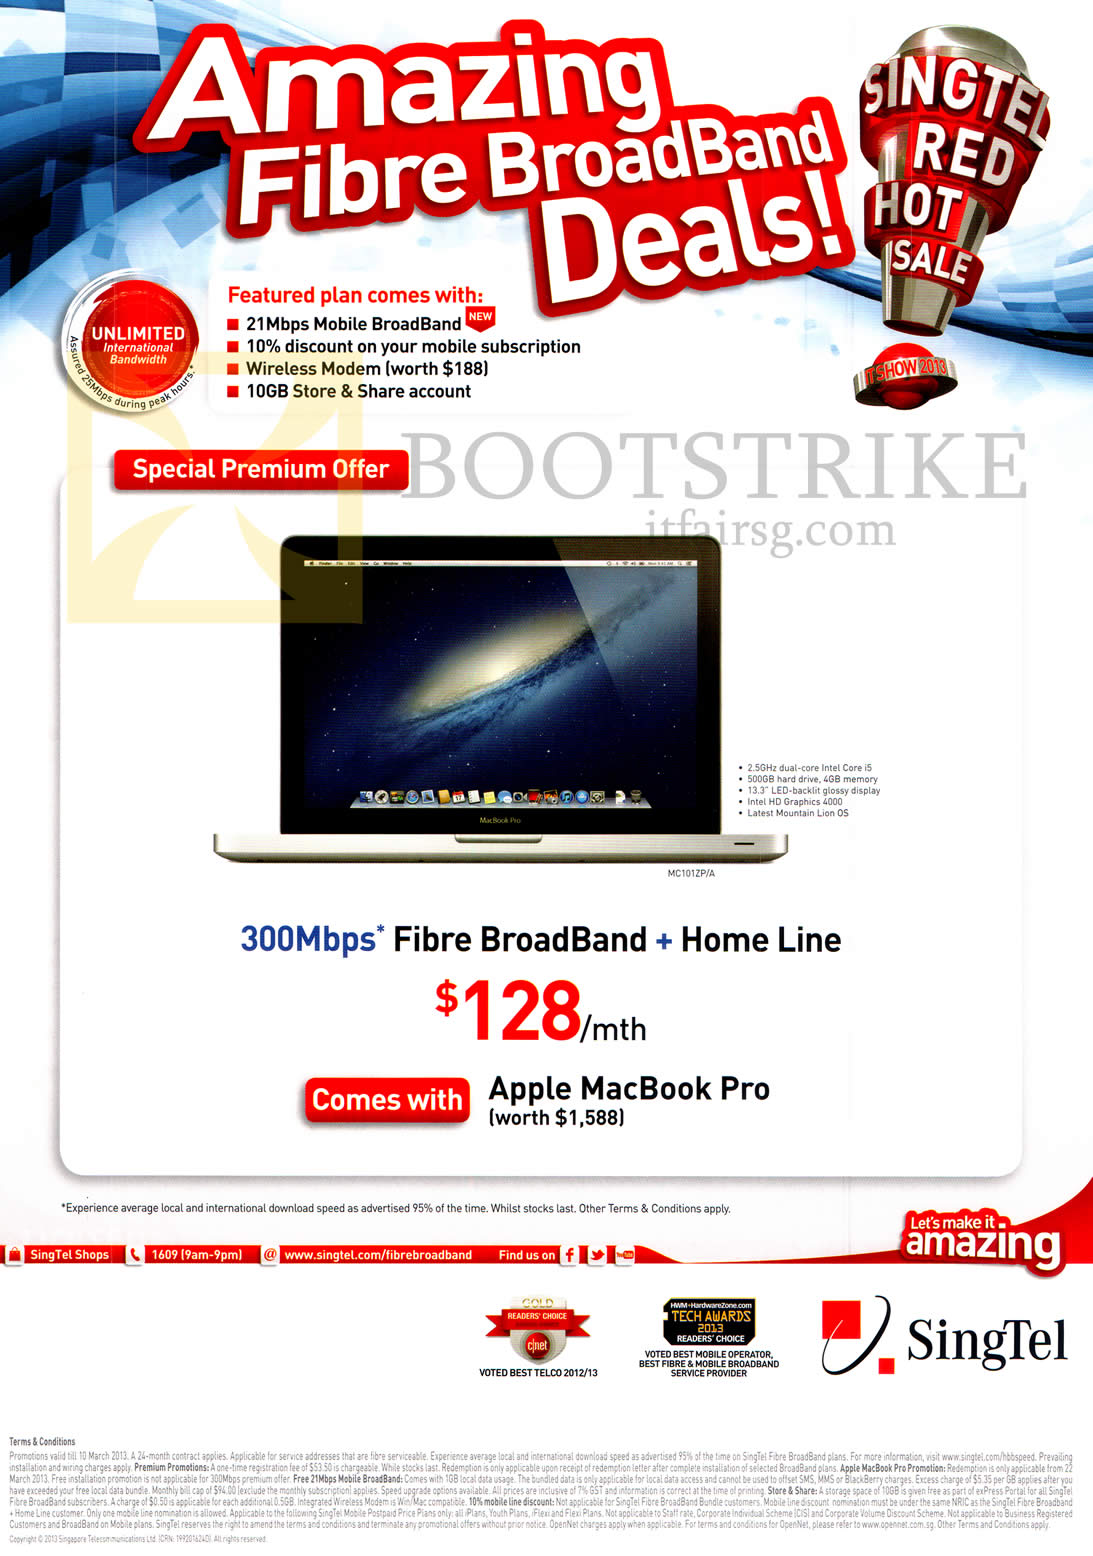 IT SHOW 2013 price list image brochure of Singtel Broadband Fibre 300Mbps, Fixed Line, 21Mbps Mobile Broadband, Free Apple Macbook Pro